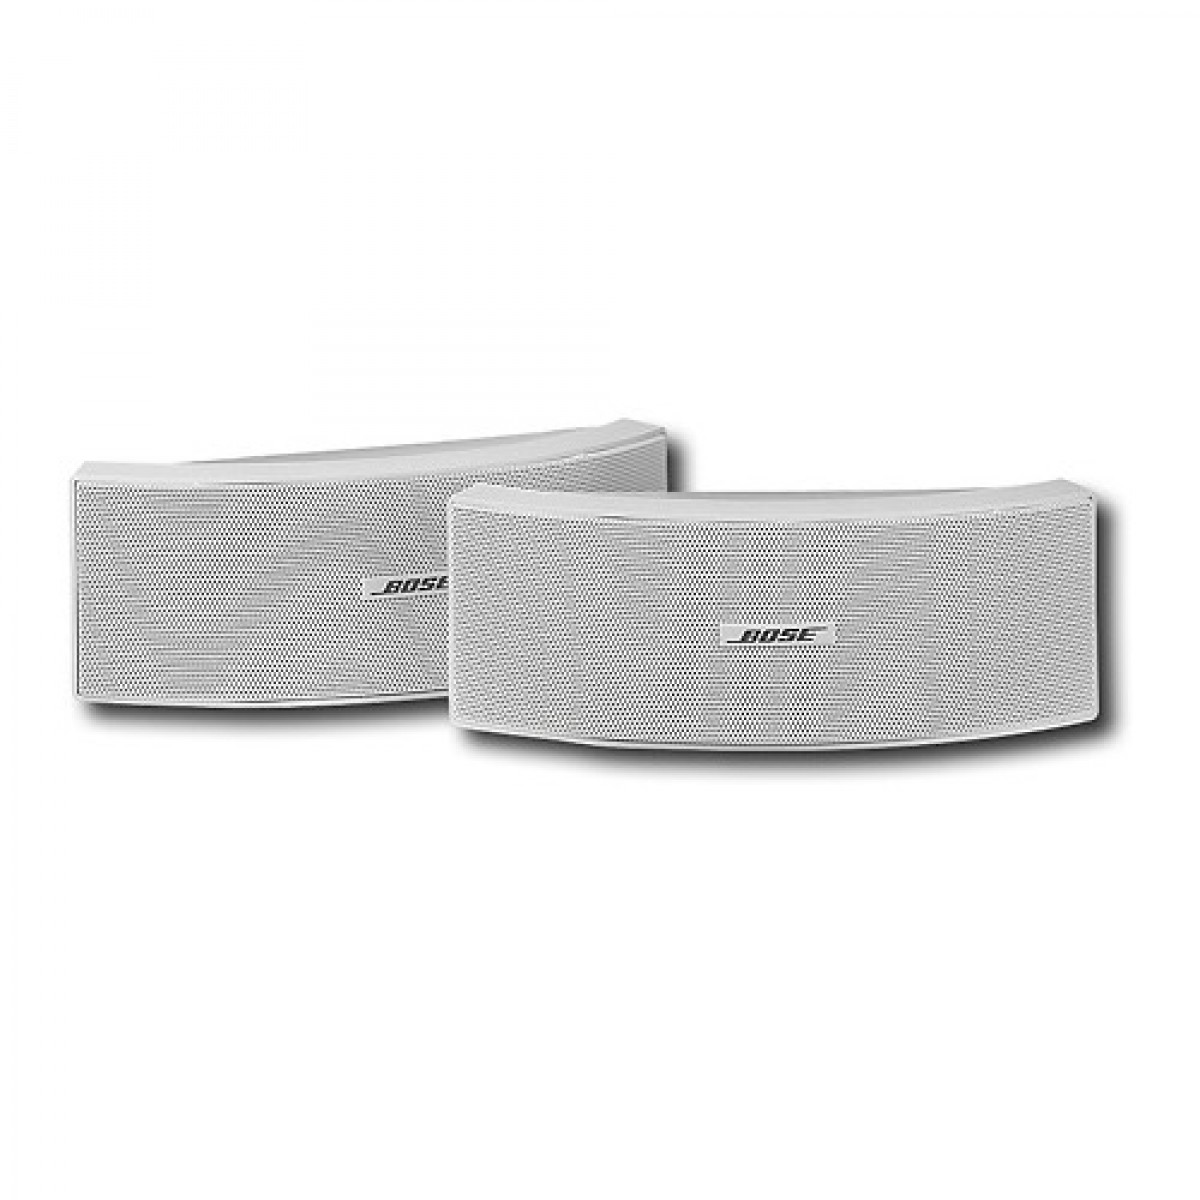 bose 151 se outdoor environmental speakers pair white. Black Bedroom Furniture Sets. Home Design Ideas